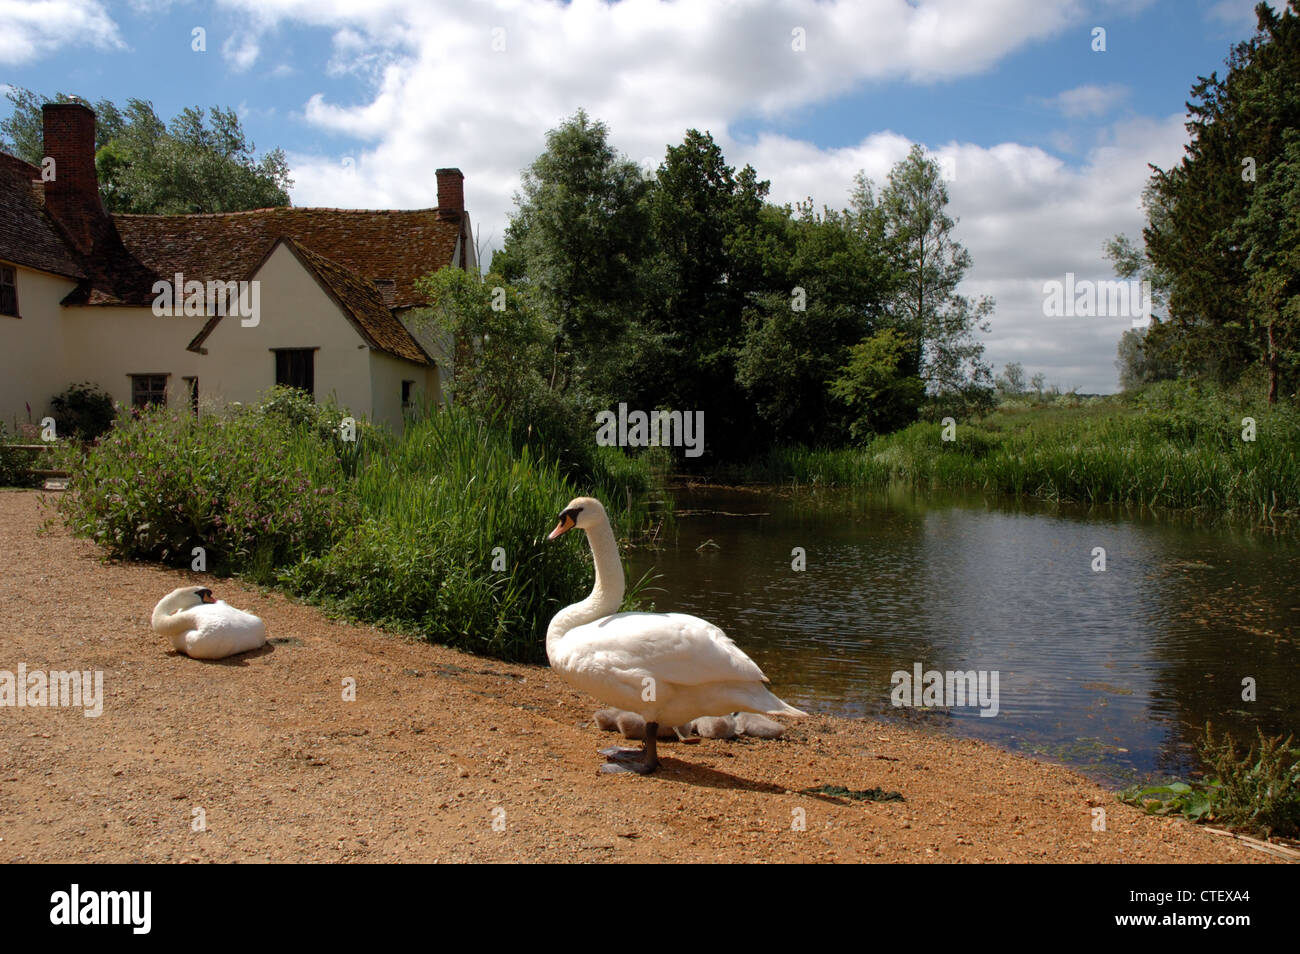 """Willy Lott's Cottage at Flatford Mill, the setting for John Constable's famous painting """"The Hay Wain"""" Stock Photo"""